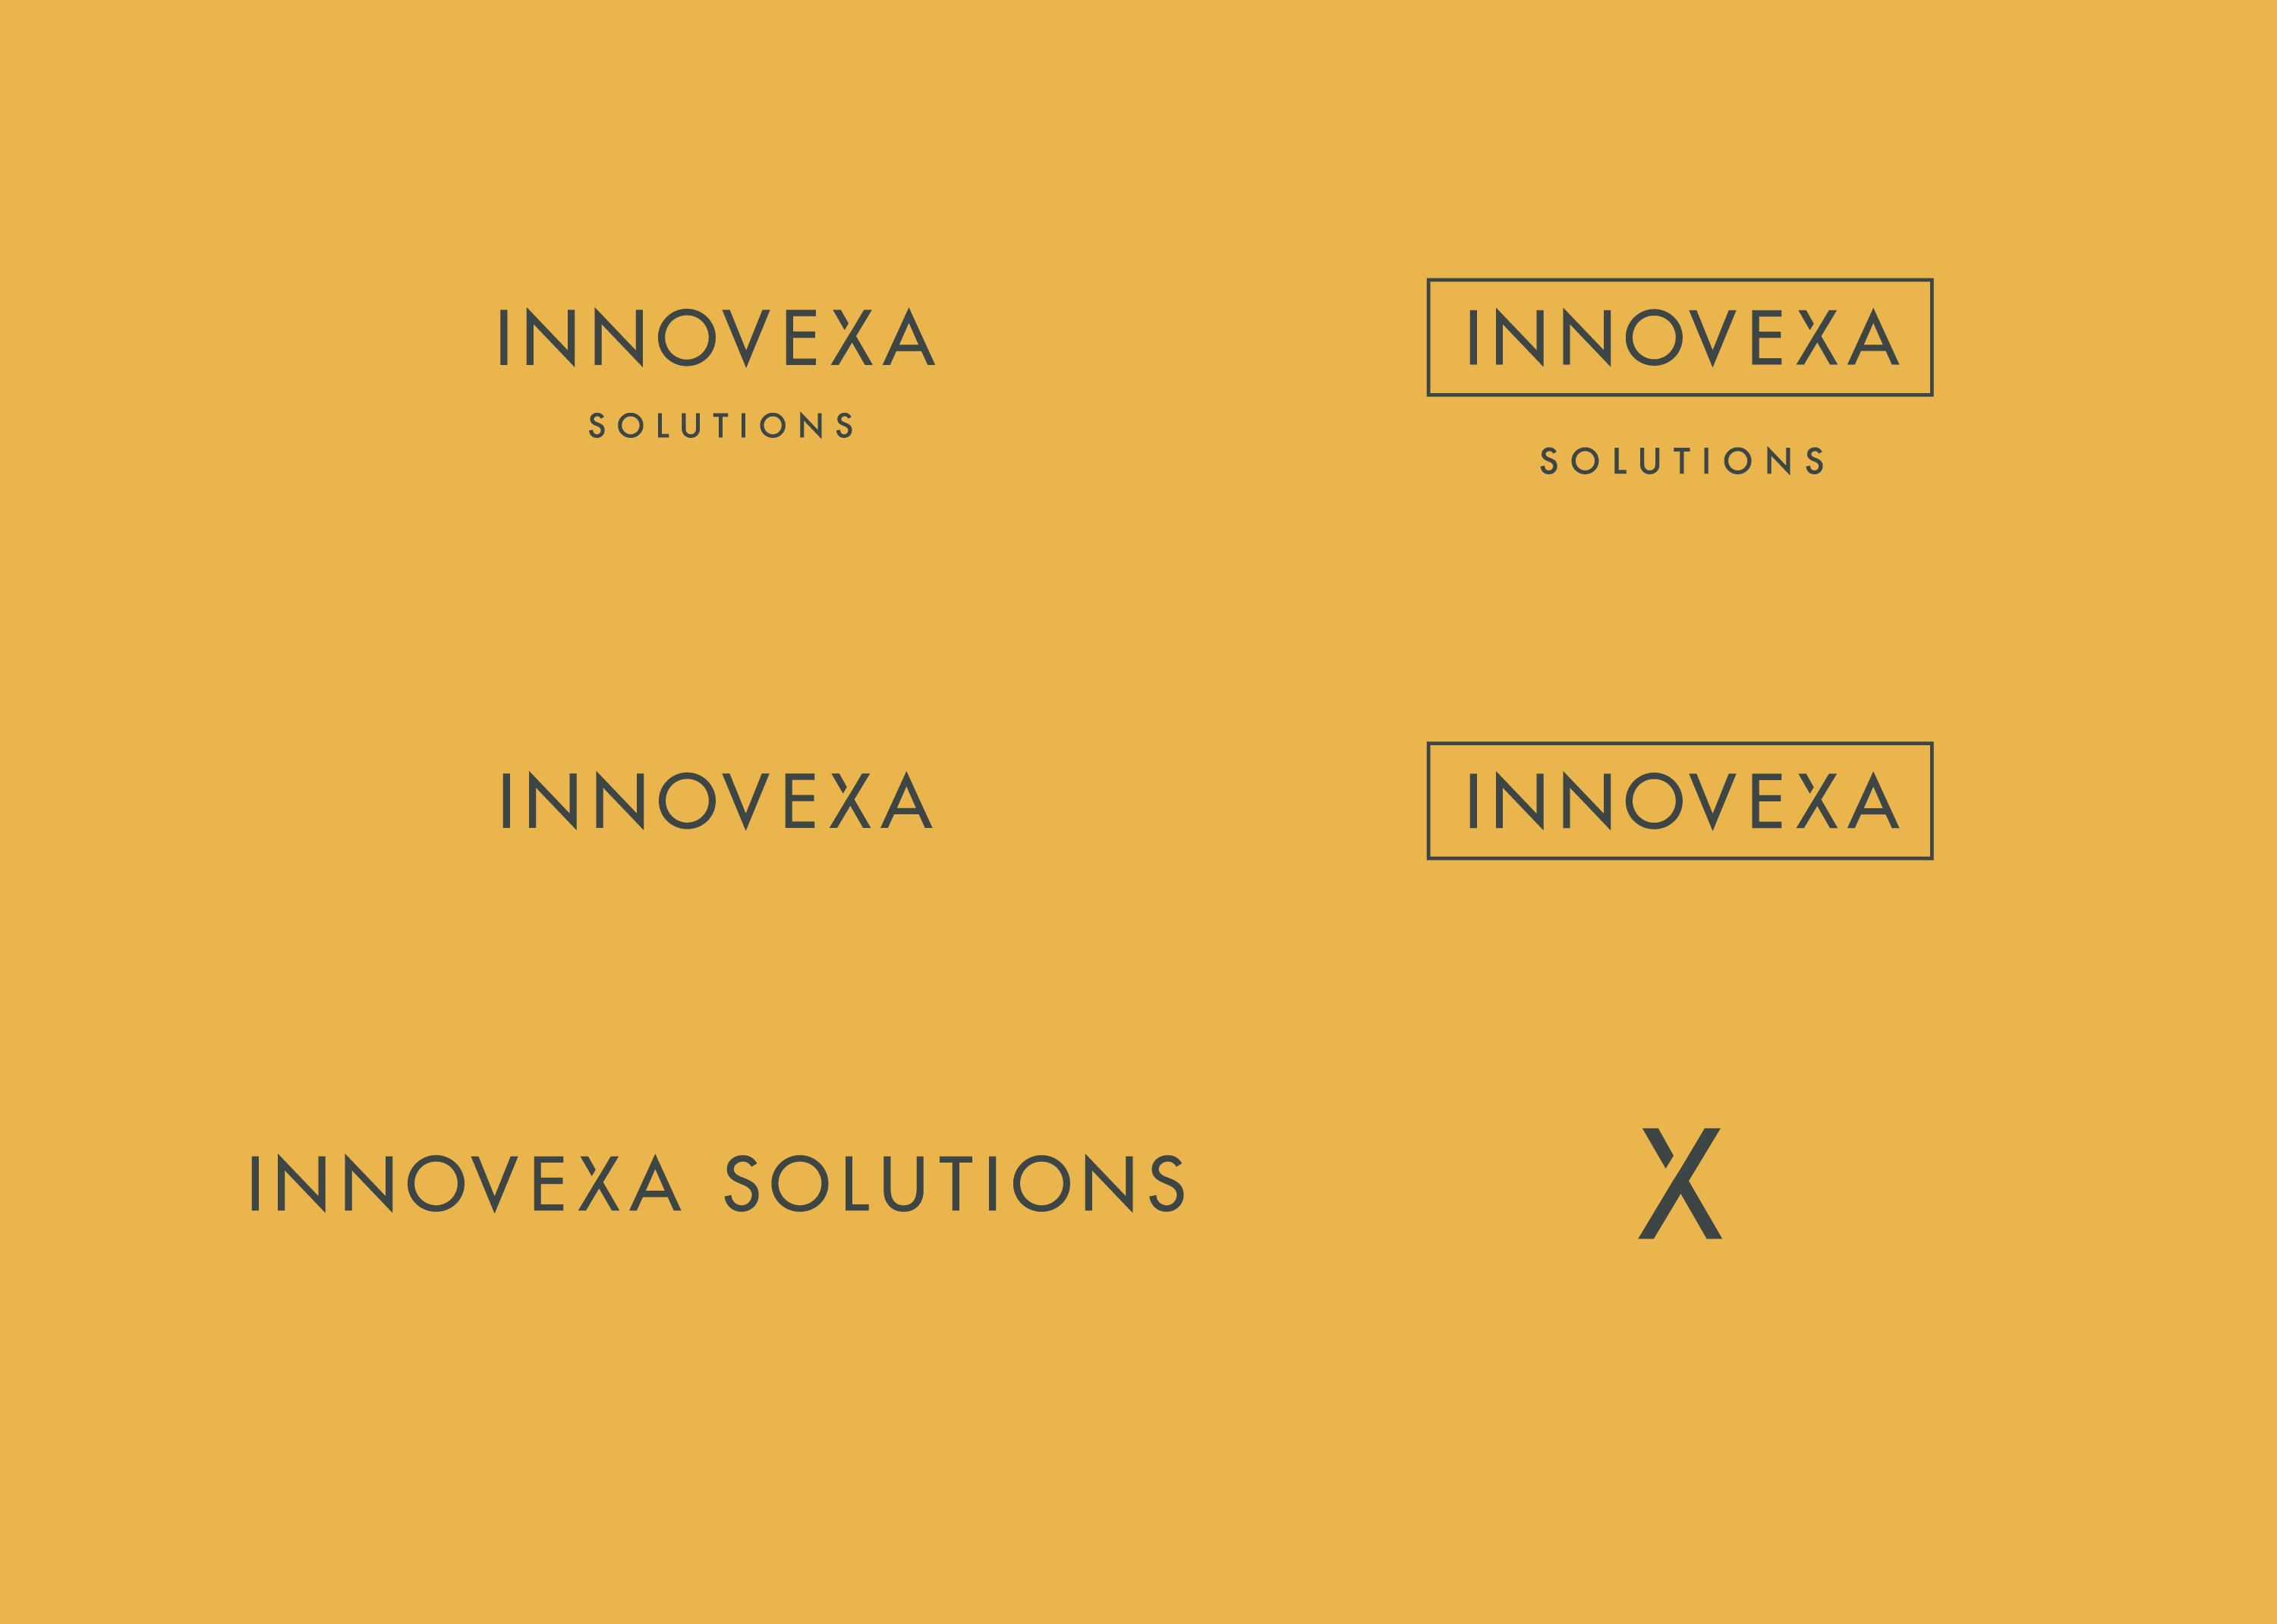 Innovexa_All_Logos_No_Tags_3000px